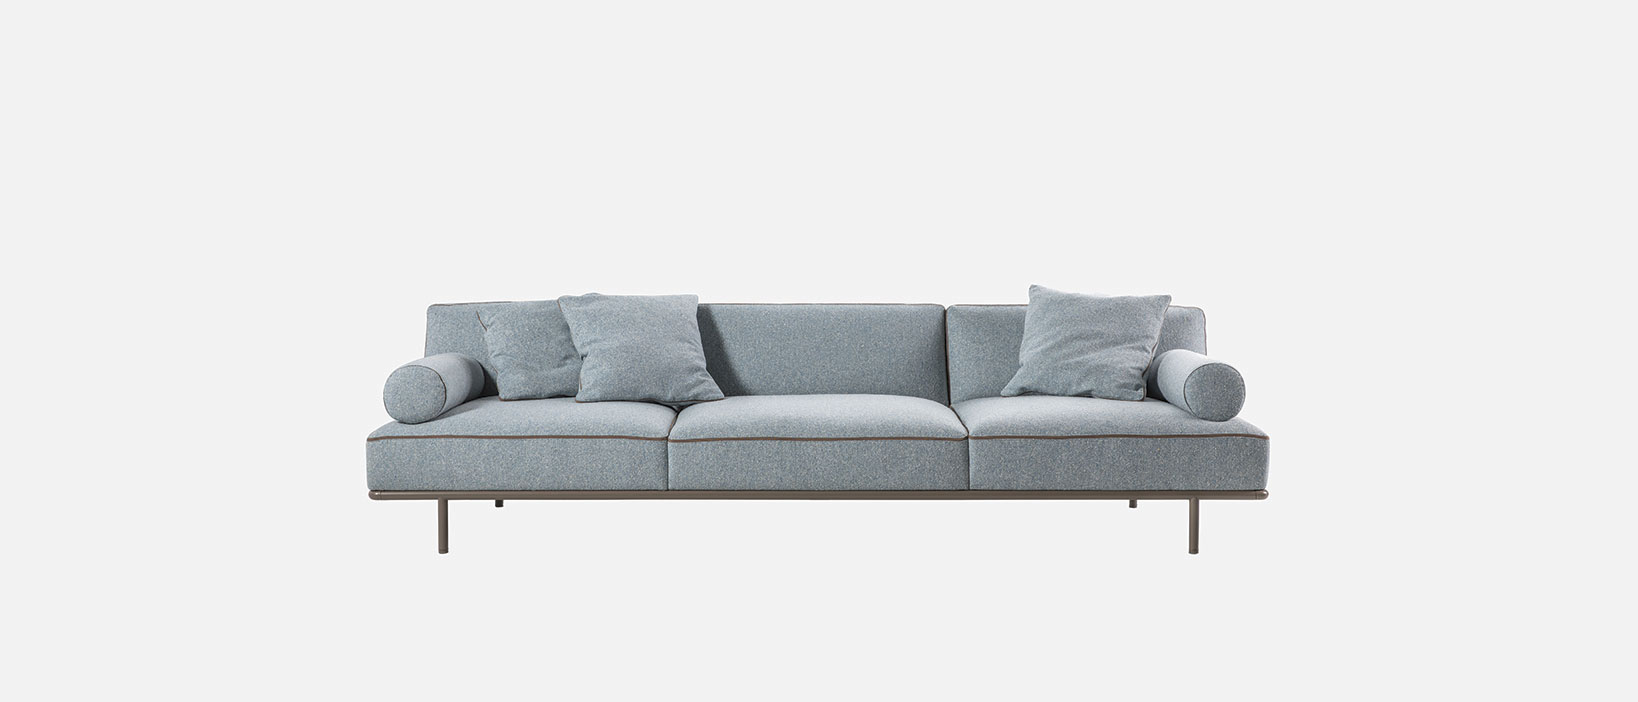 Sofa Set Vector Free Download Designer Furniture Italian Interior Design Cappellini